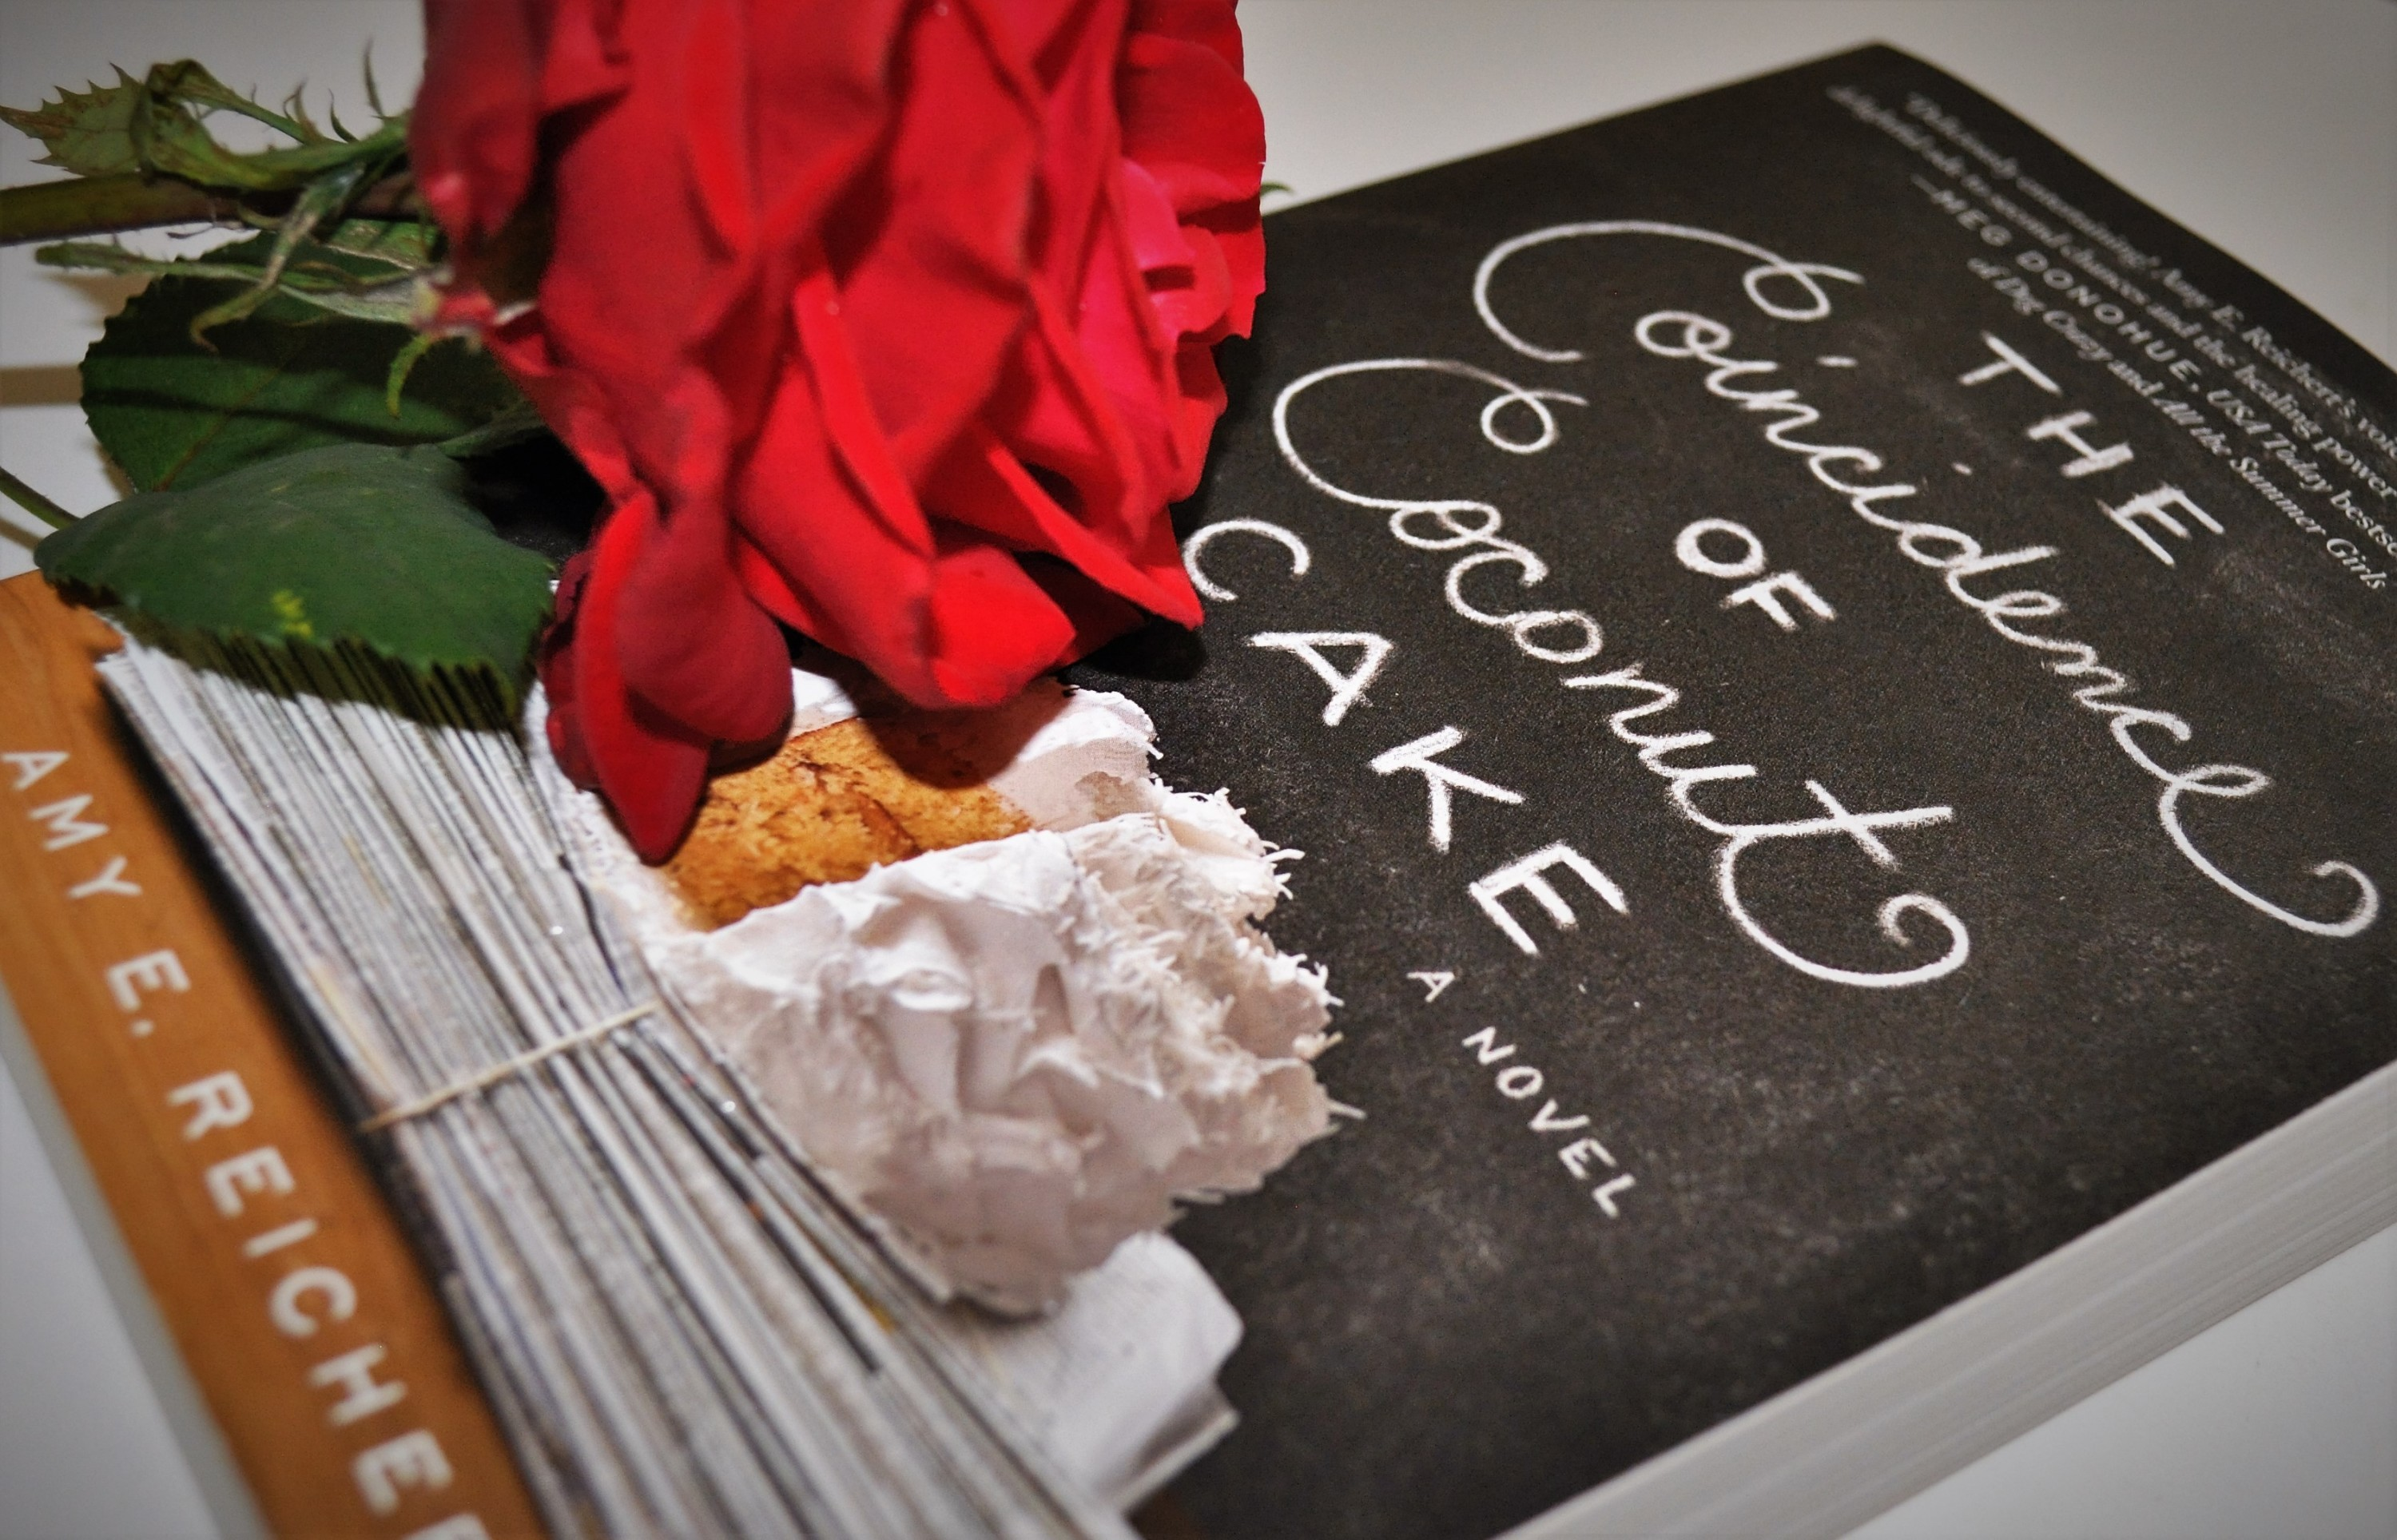 Coincidence of Coconut Cake Book